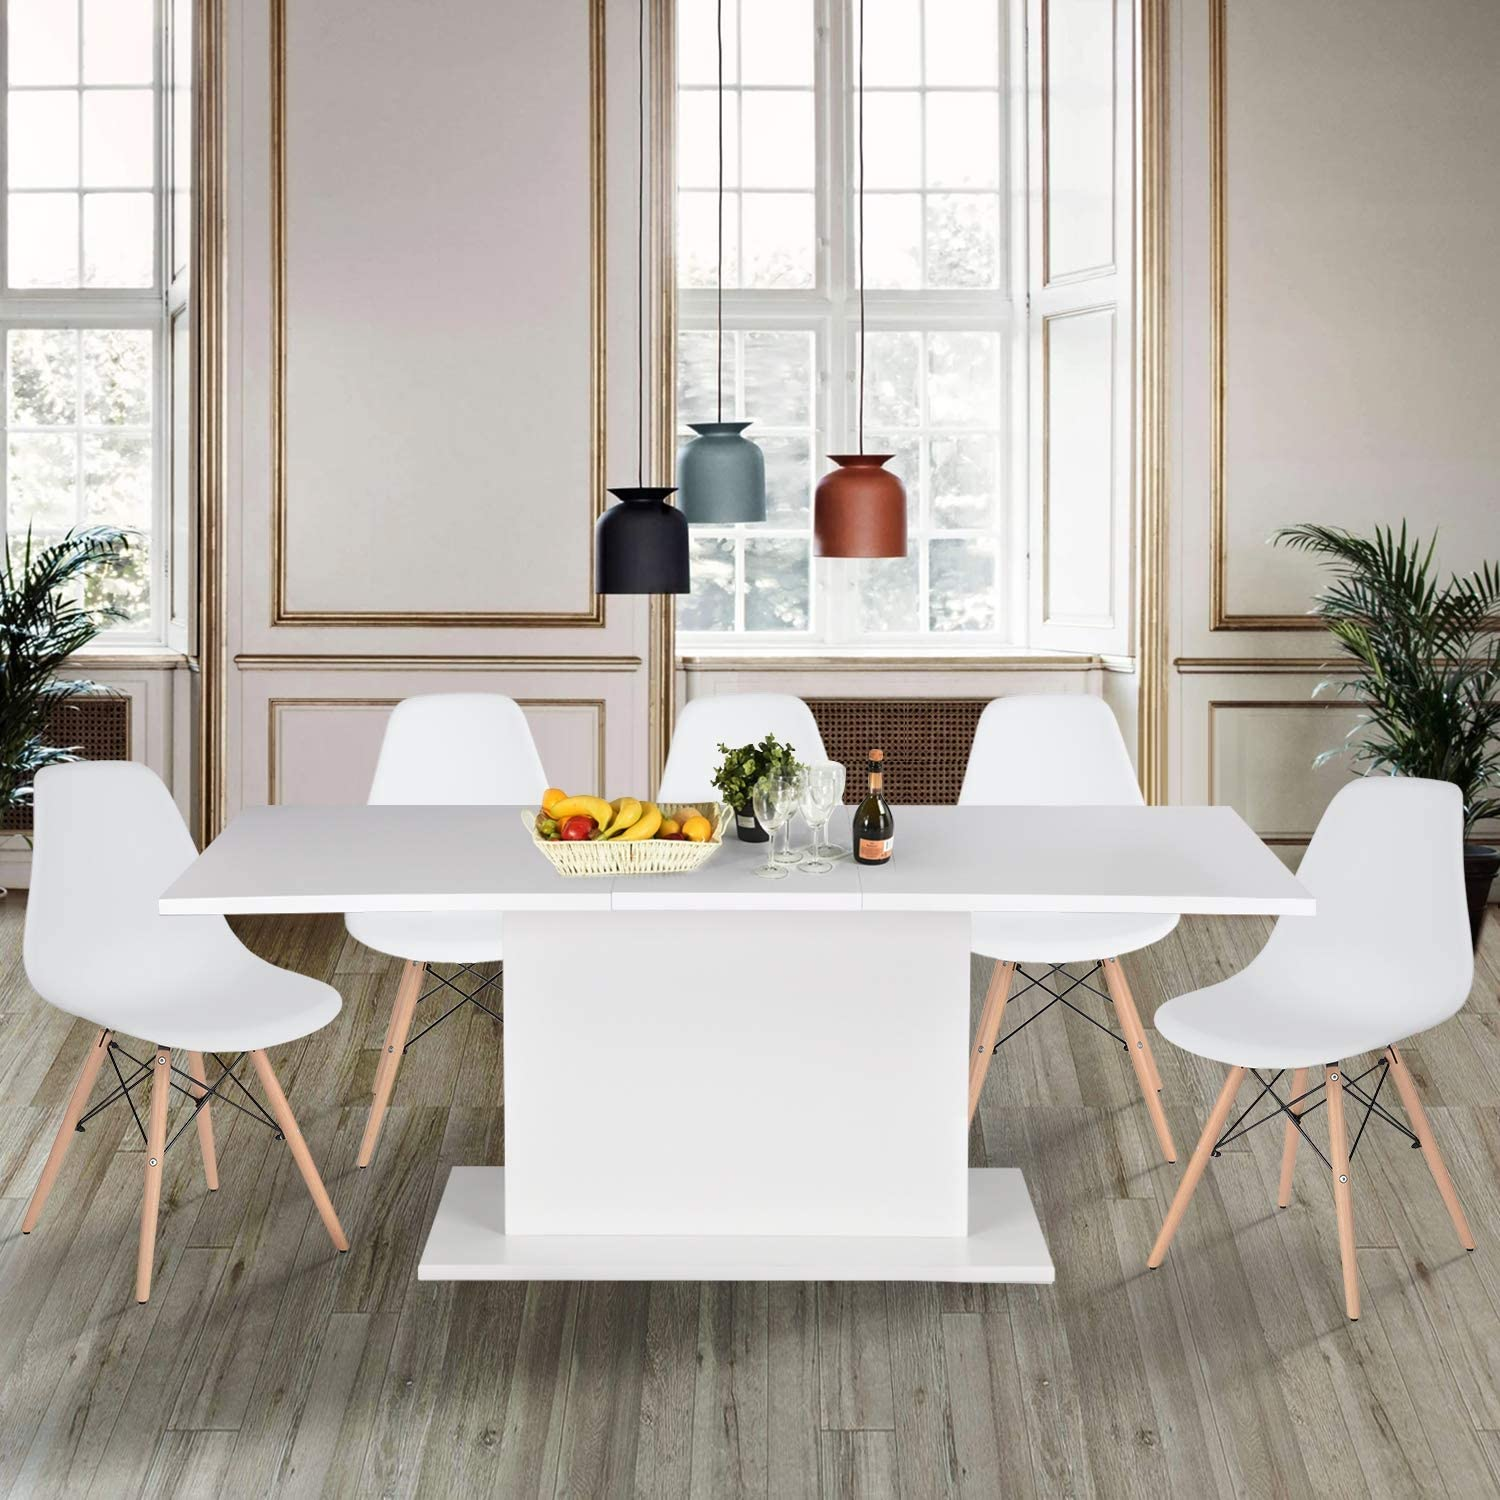 High Gloss White Extendable Rectangular Dining Table Homy Casa Multifunction Space Saving Wood Table High Gloss White Top Amazon Ca Home Kitchen